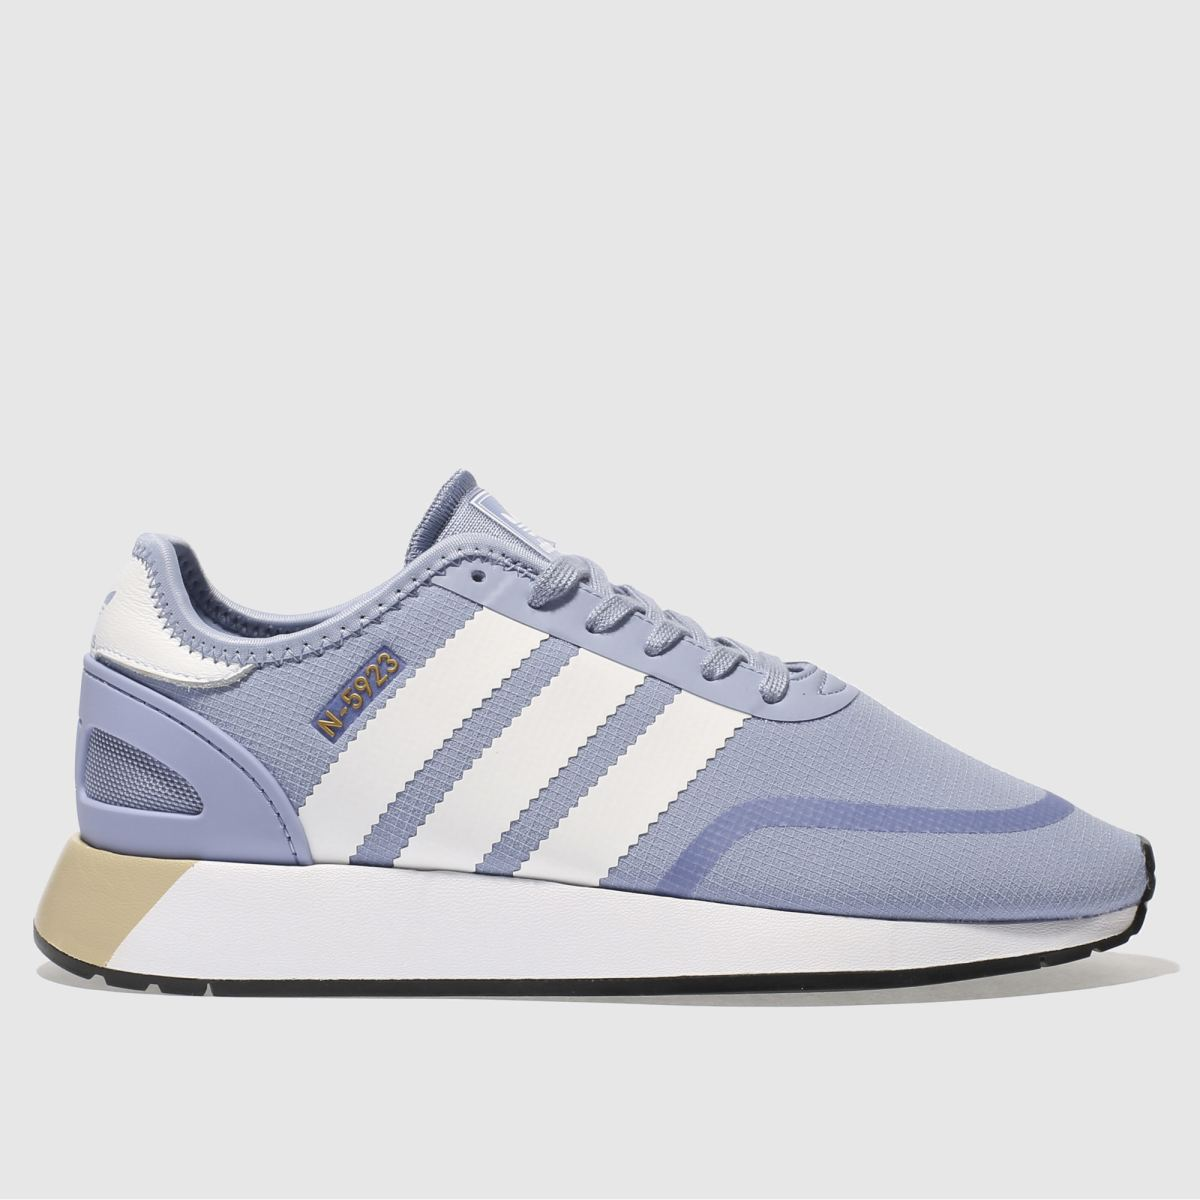 Adidas Pale Blue N-5923 Trainers